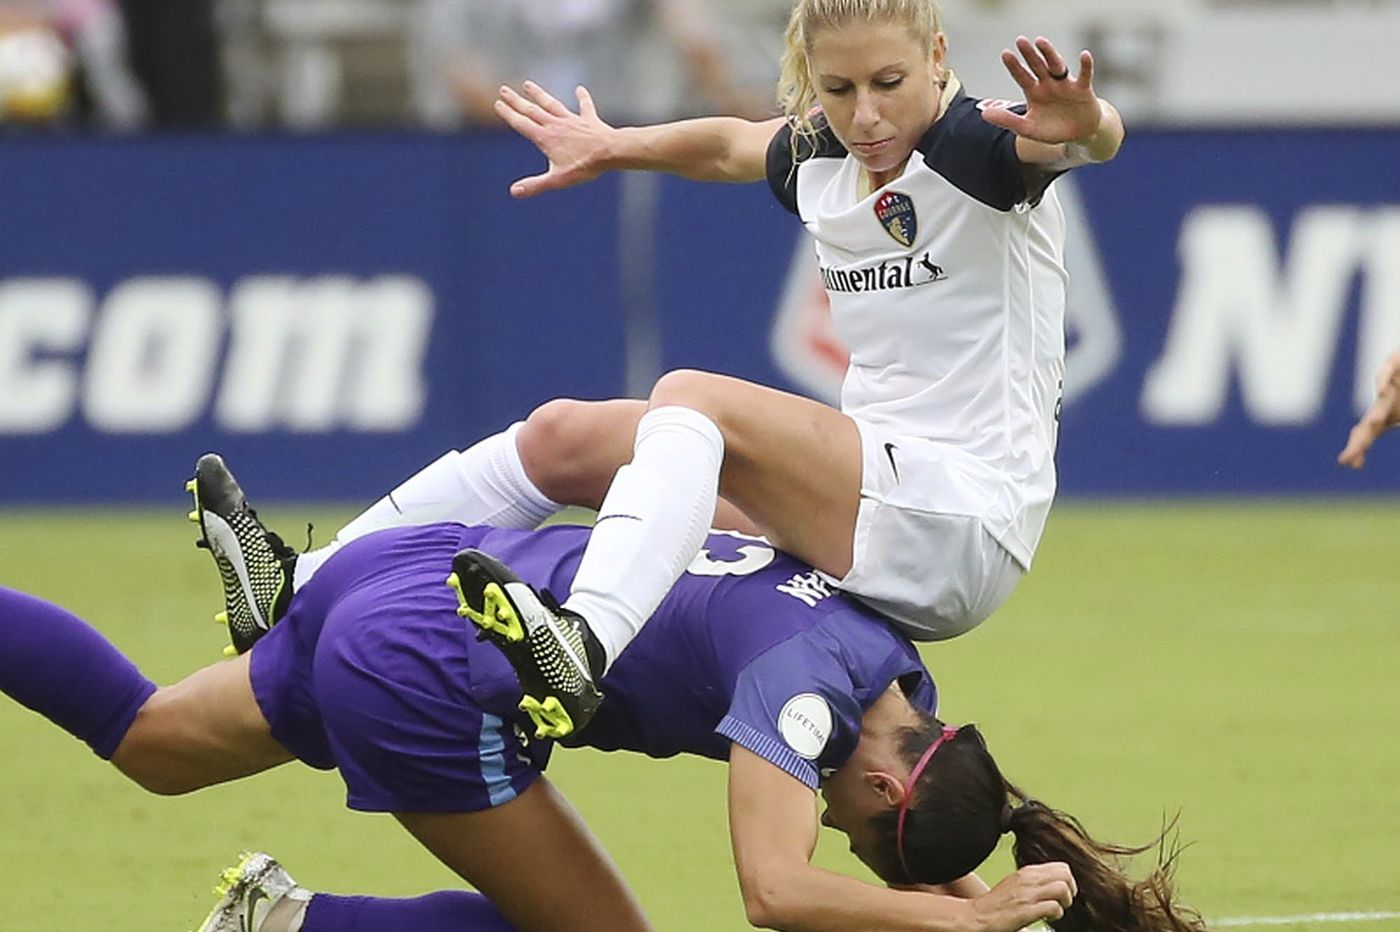 USWNT late bloomer McCall Zerboni has shot at making World Cup team